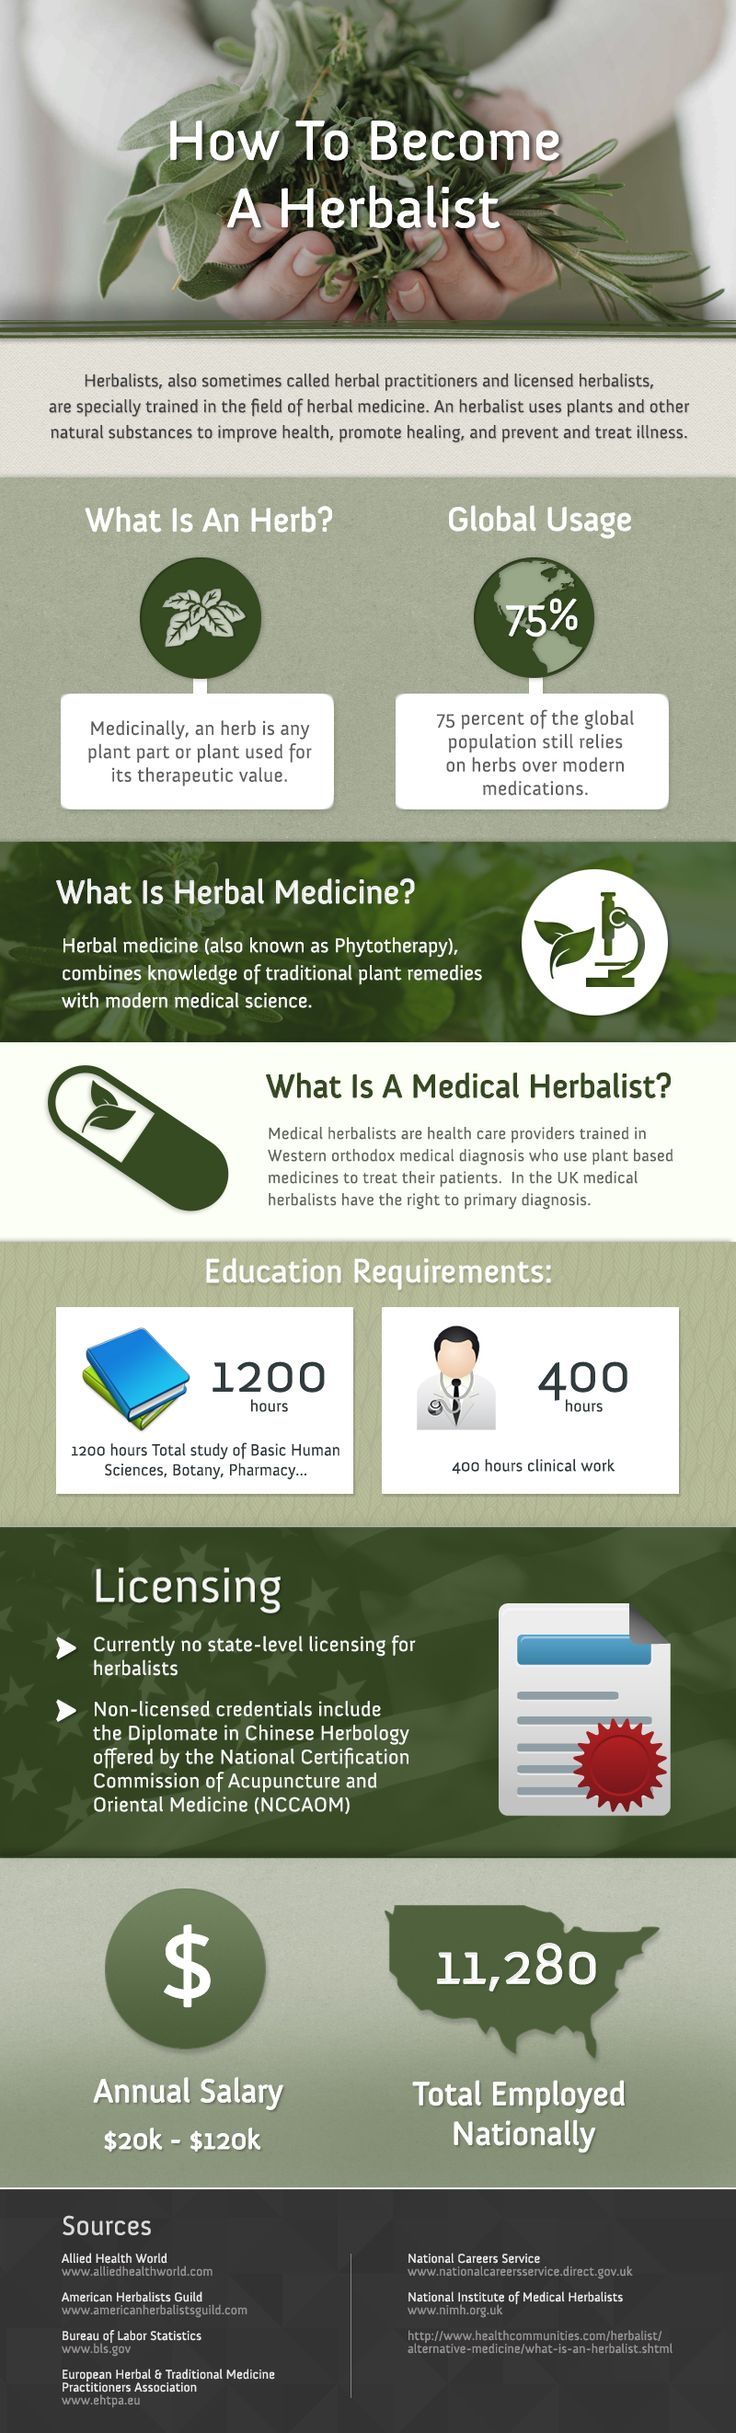 This infographic highlights some key points when it comes to careers in Herbalism and becoming an herbalist. There is not much information out there for people to learn more about this profession but this infographic provides such information in a visually appealing way!